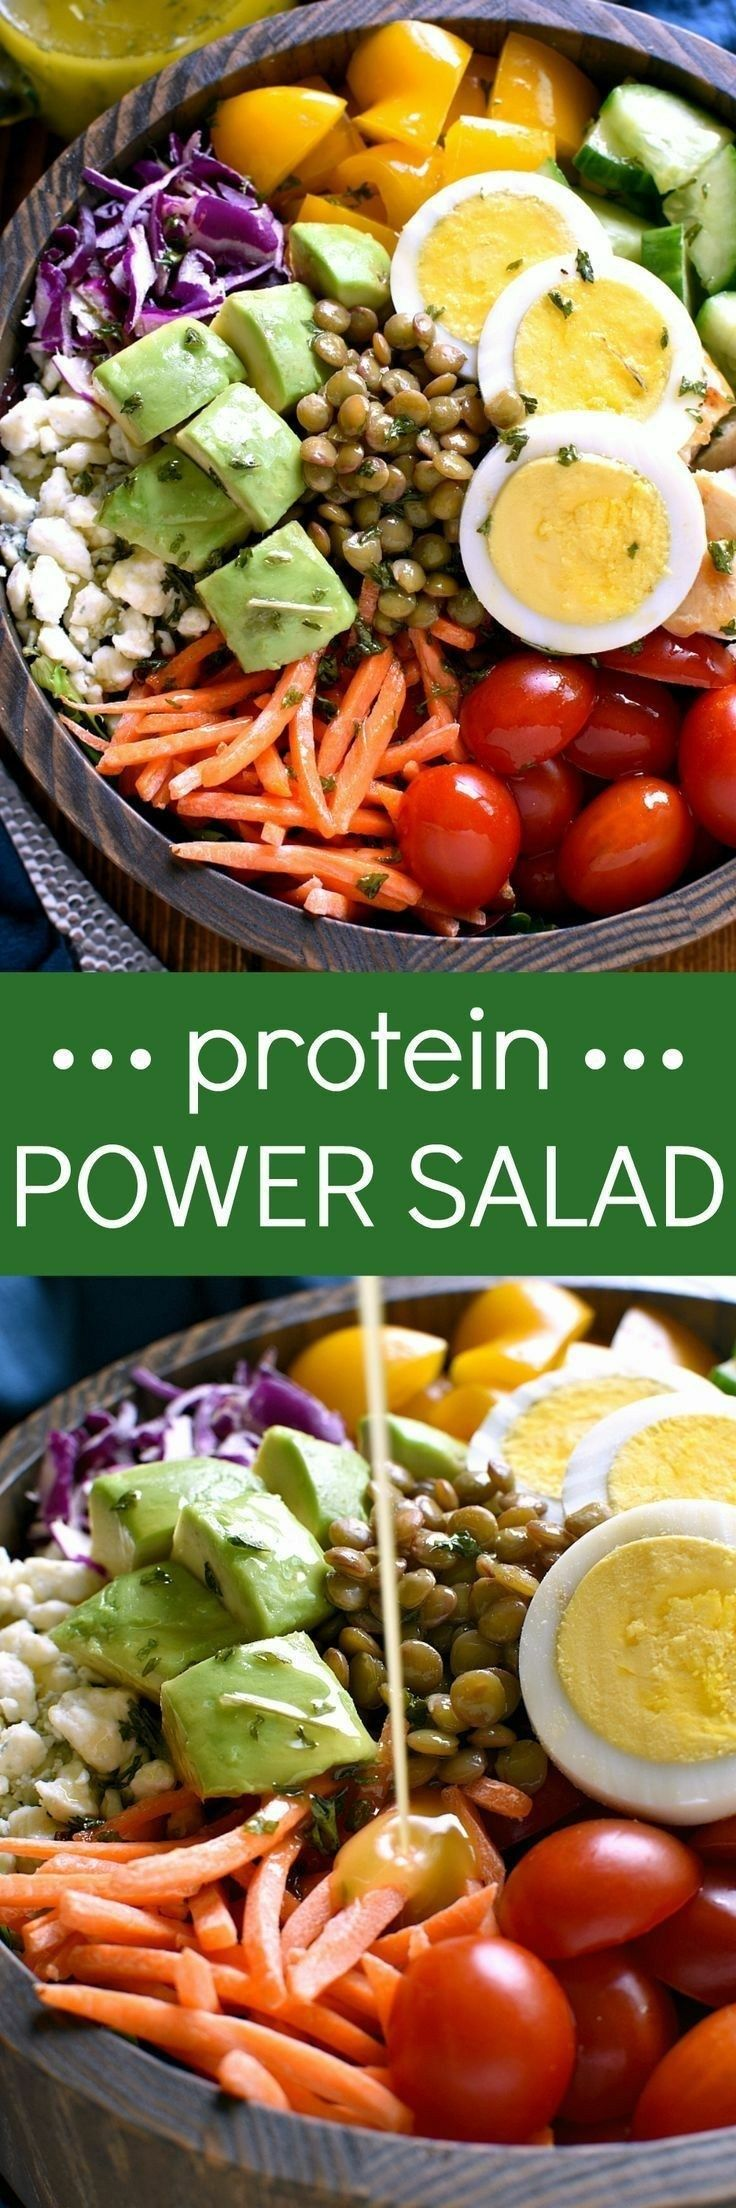 17 Delicious High-Protein Salad Recipes | Our Best Life